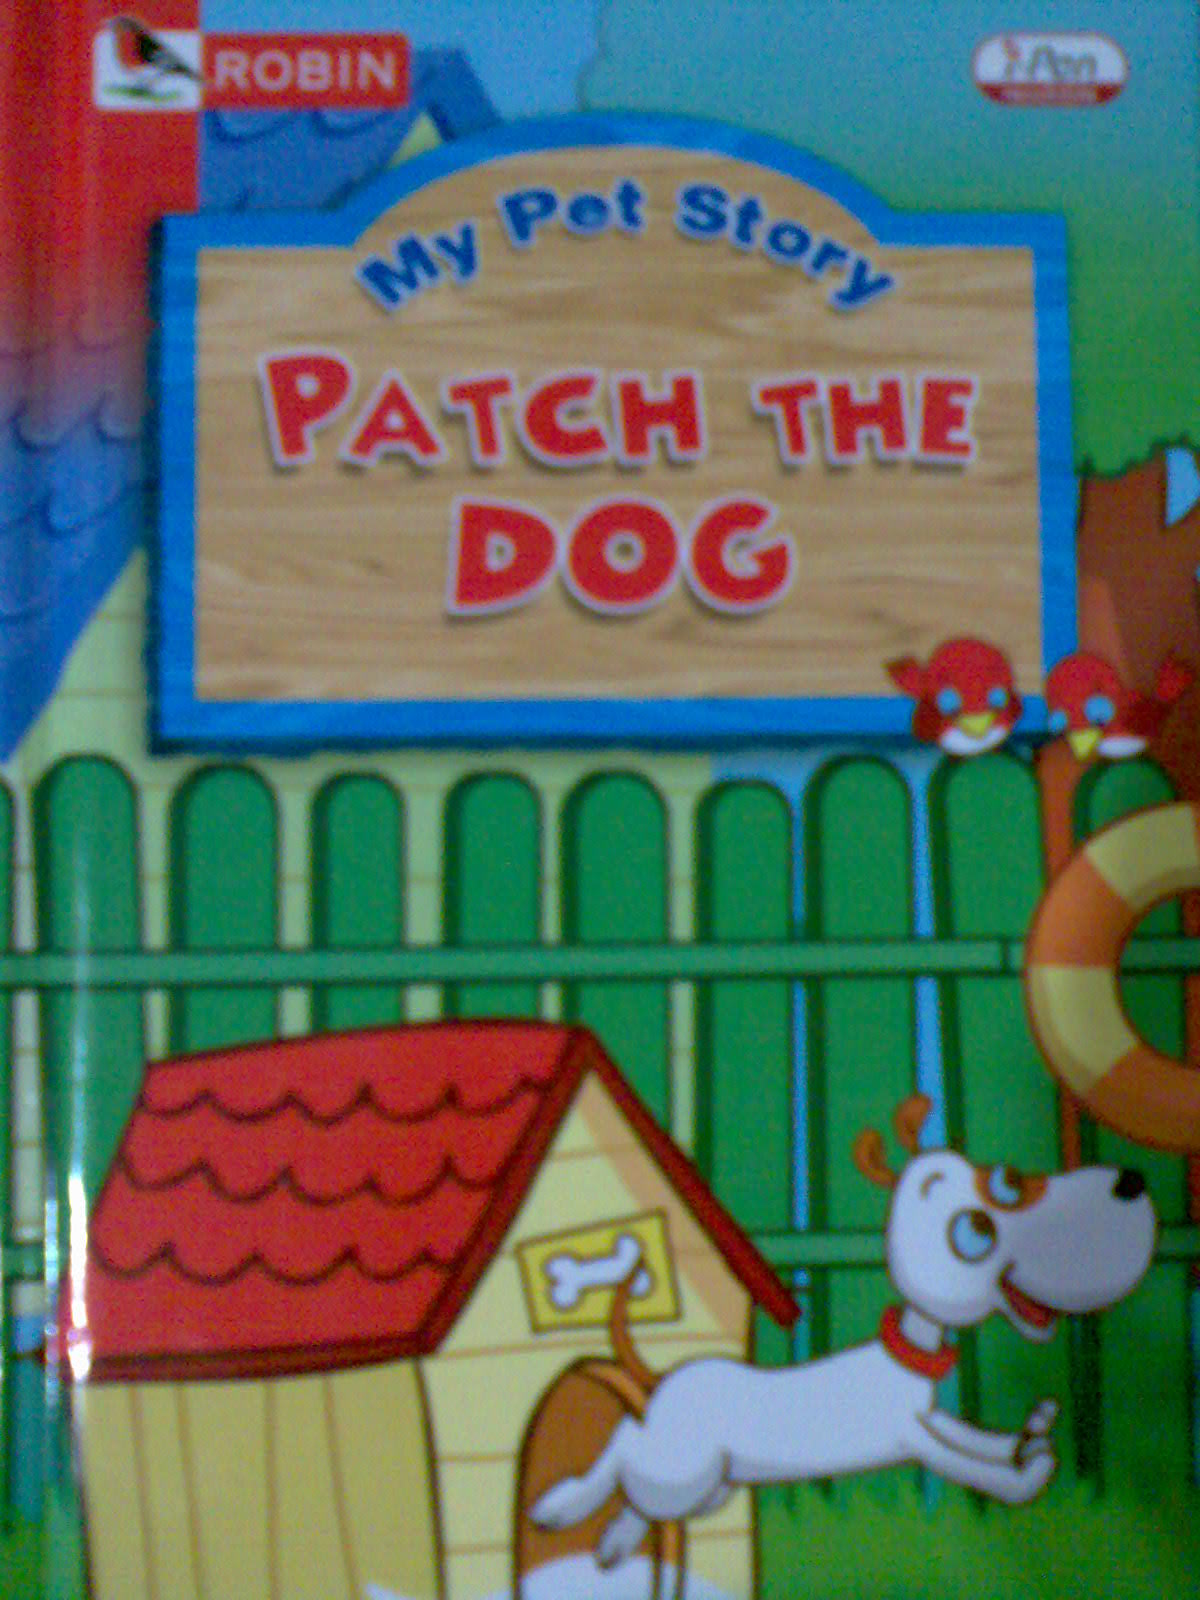 Patch the dog